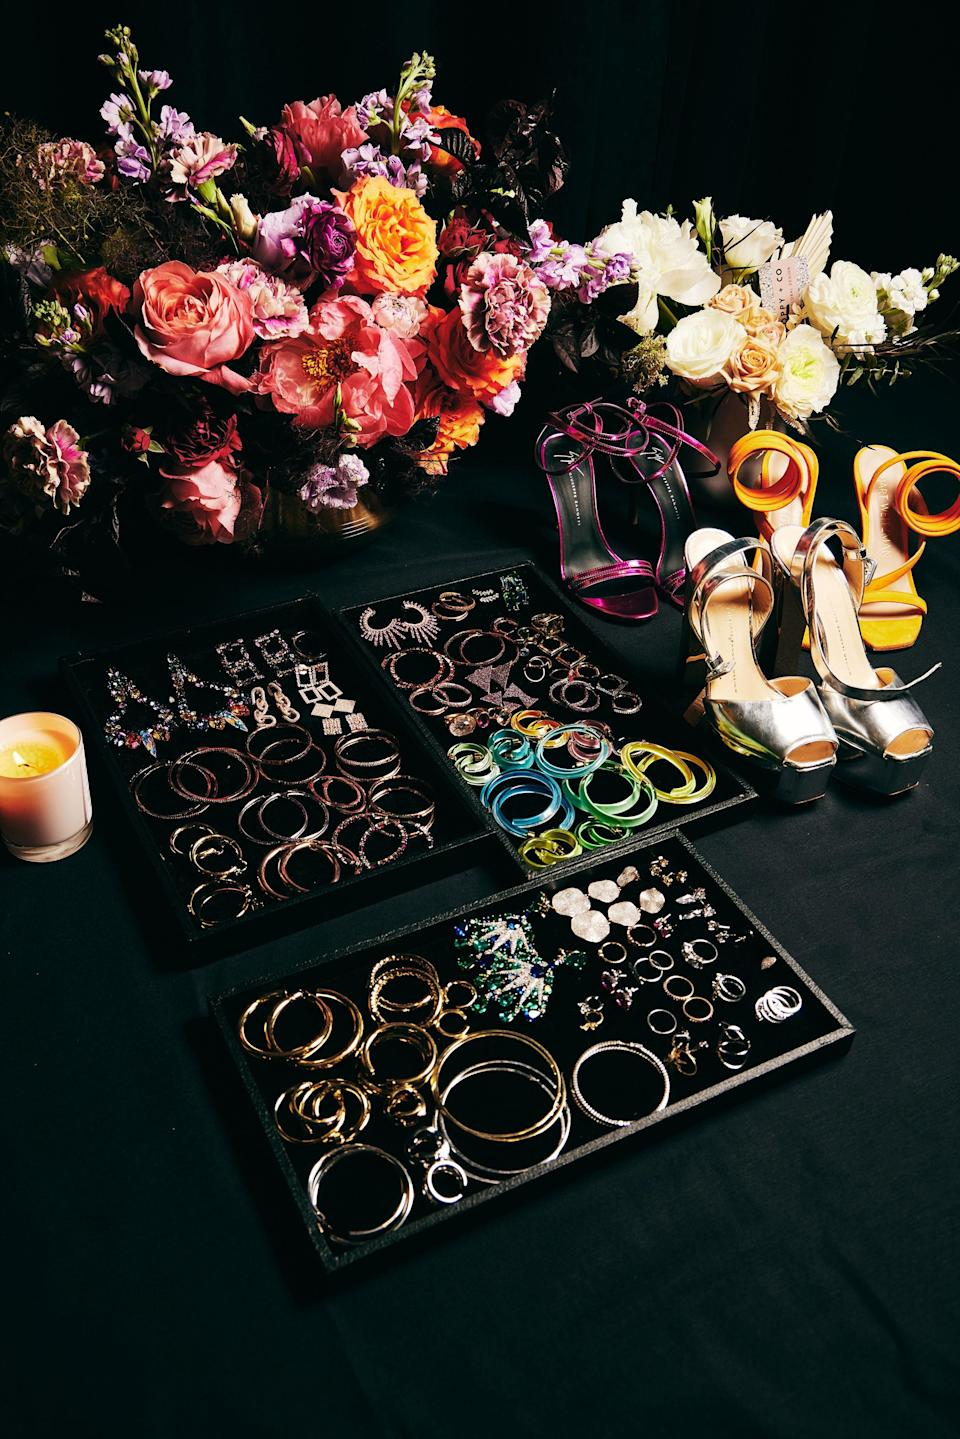 A wealth of accessories.